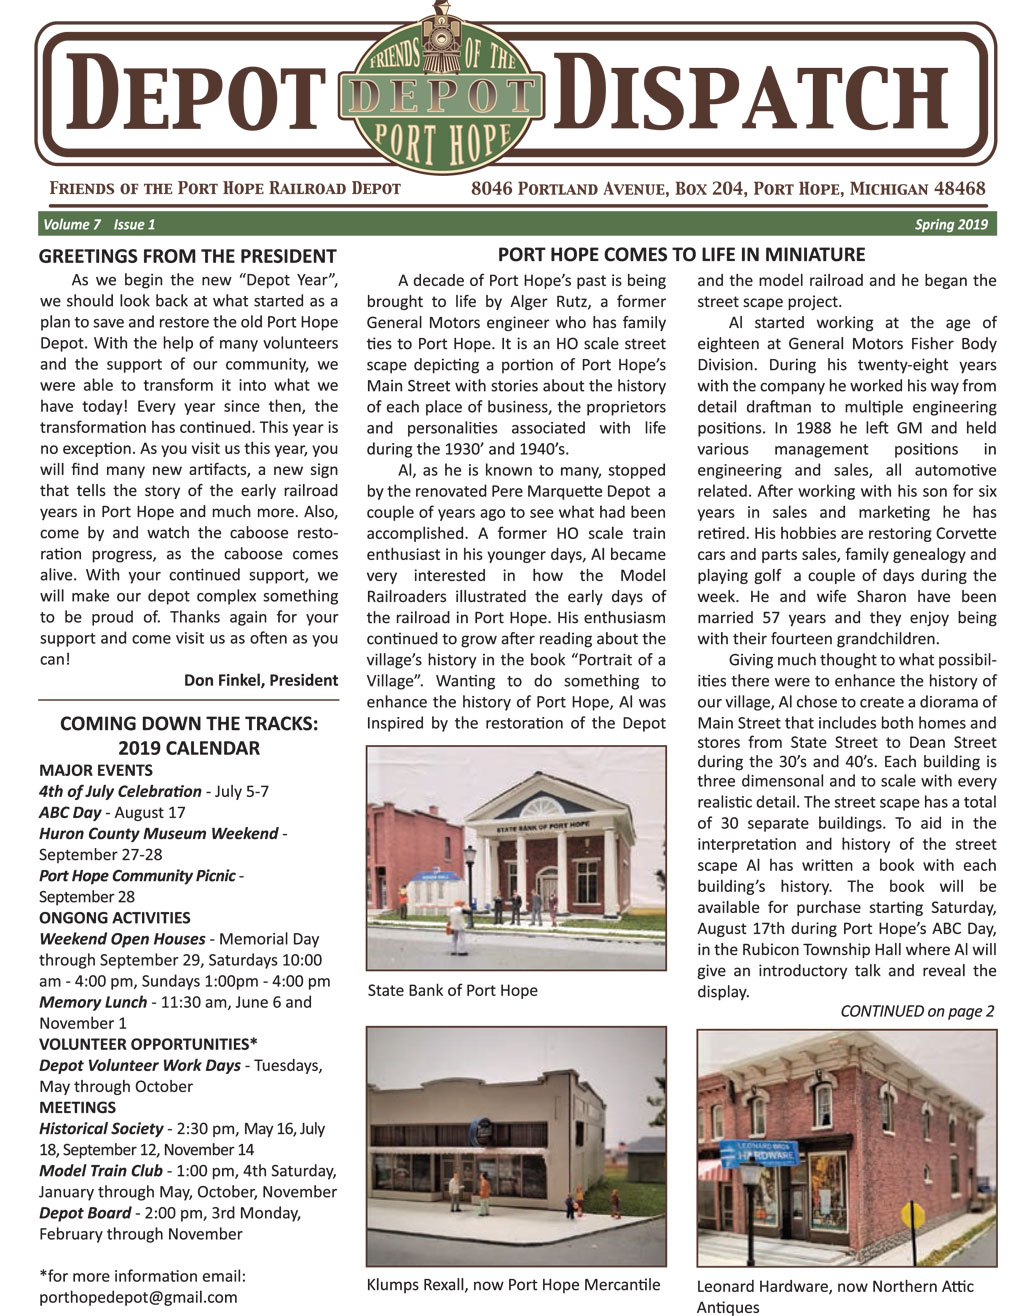 Read the Port Hope Depot Dispatch